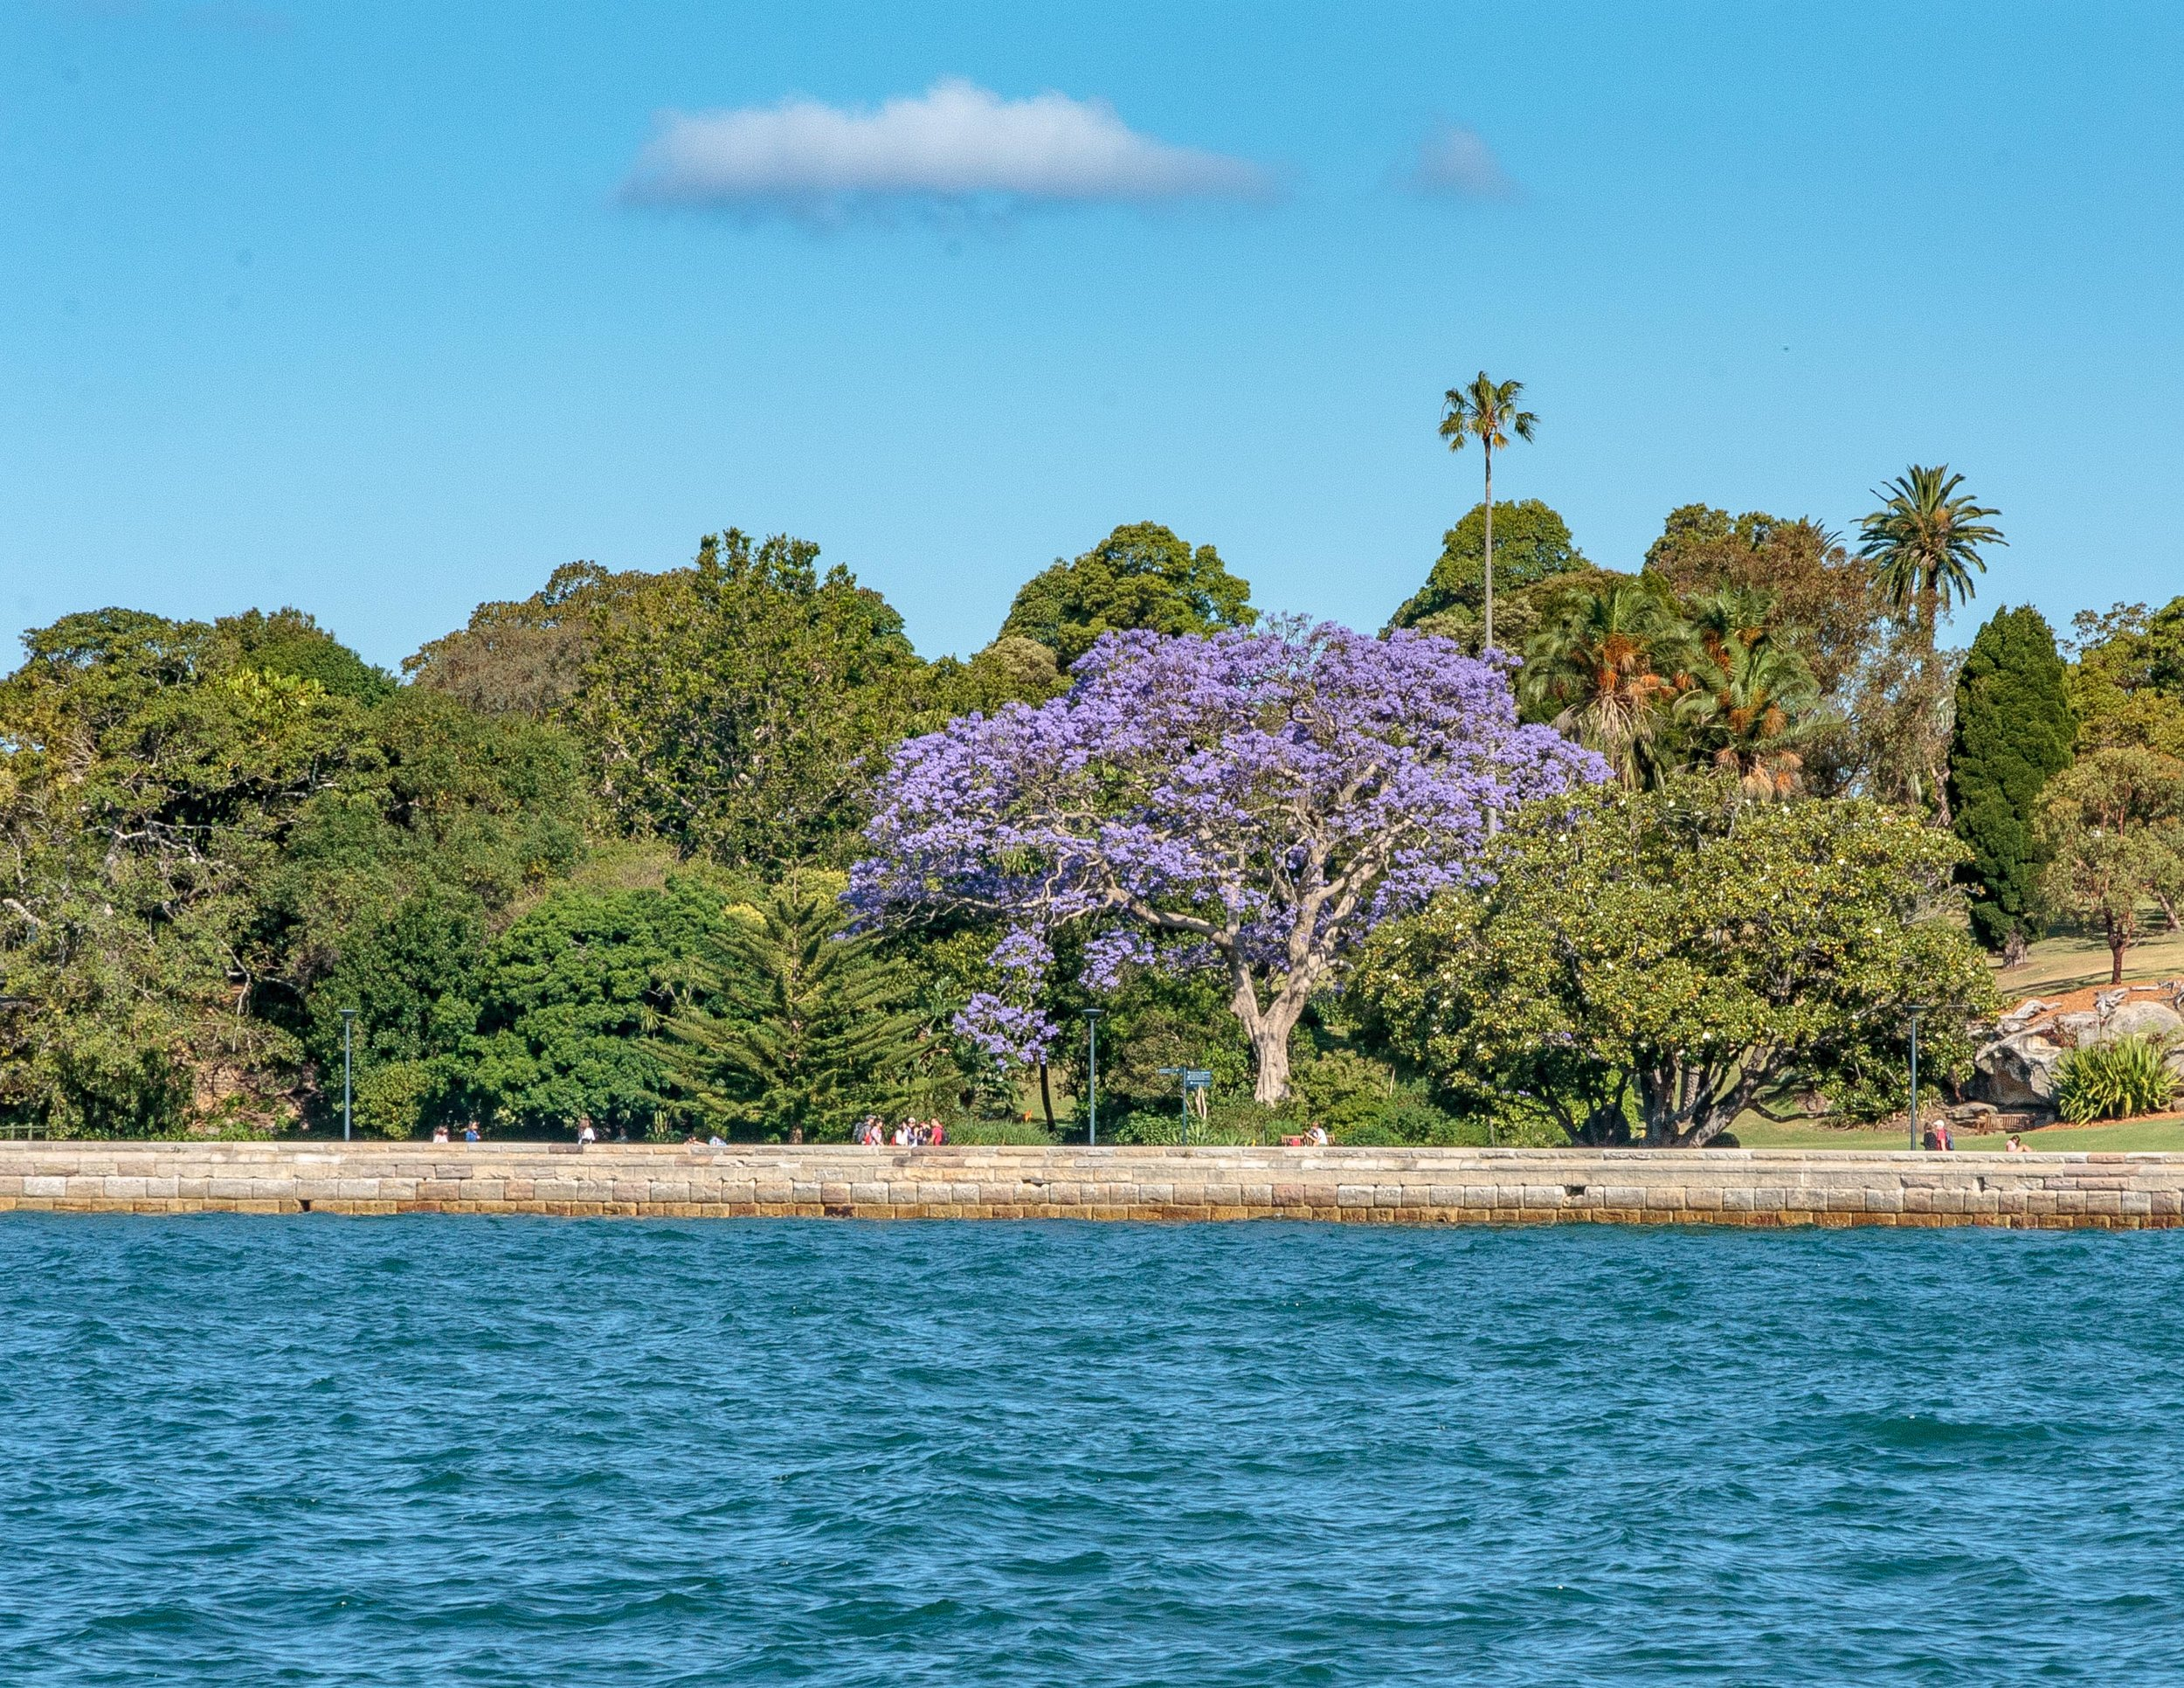 Cheap things to do in Sydney: visit the Botanic Gardens